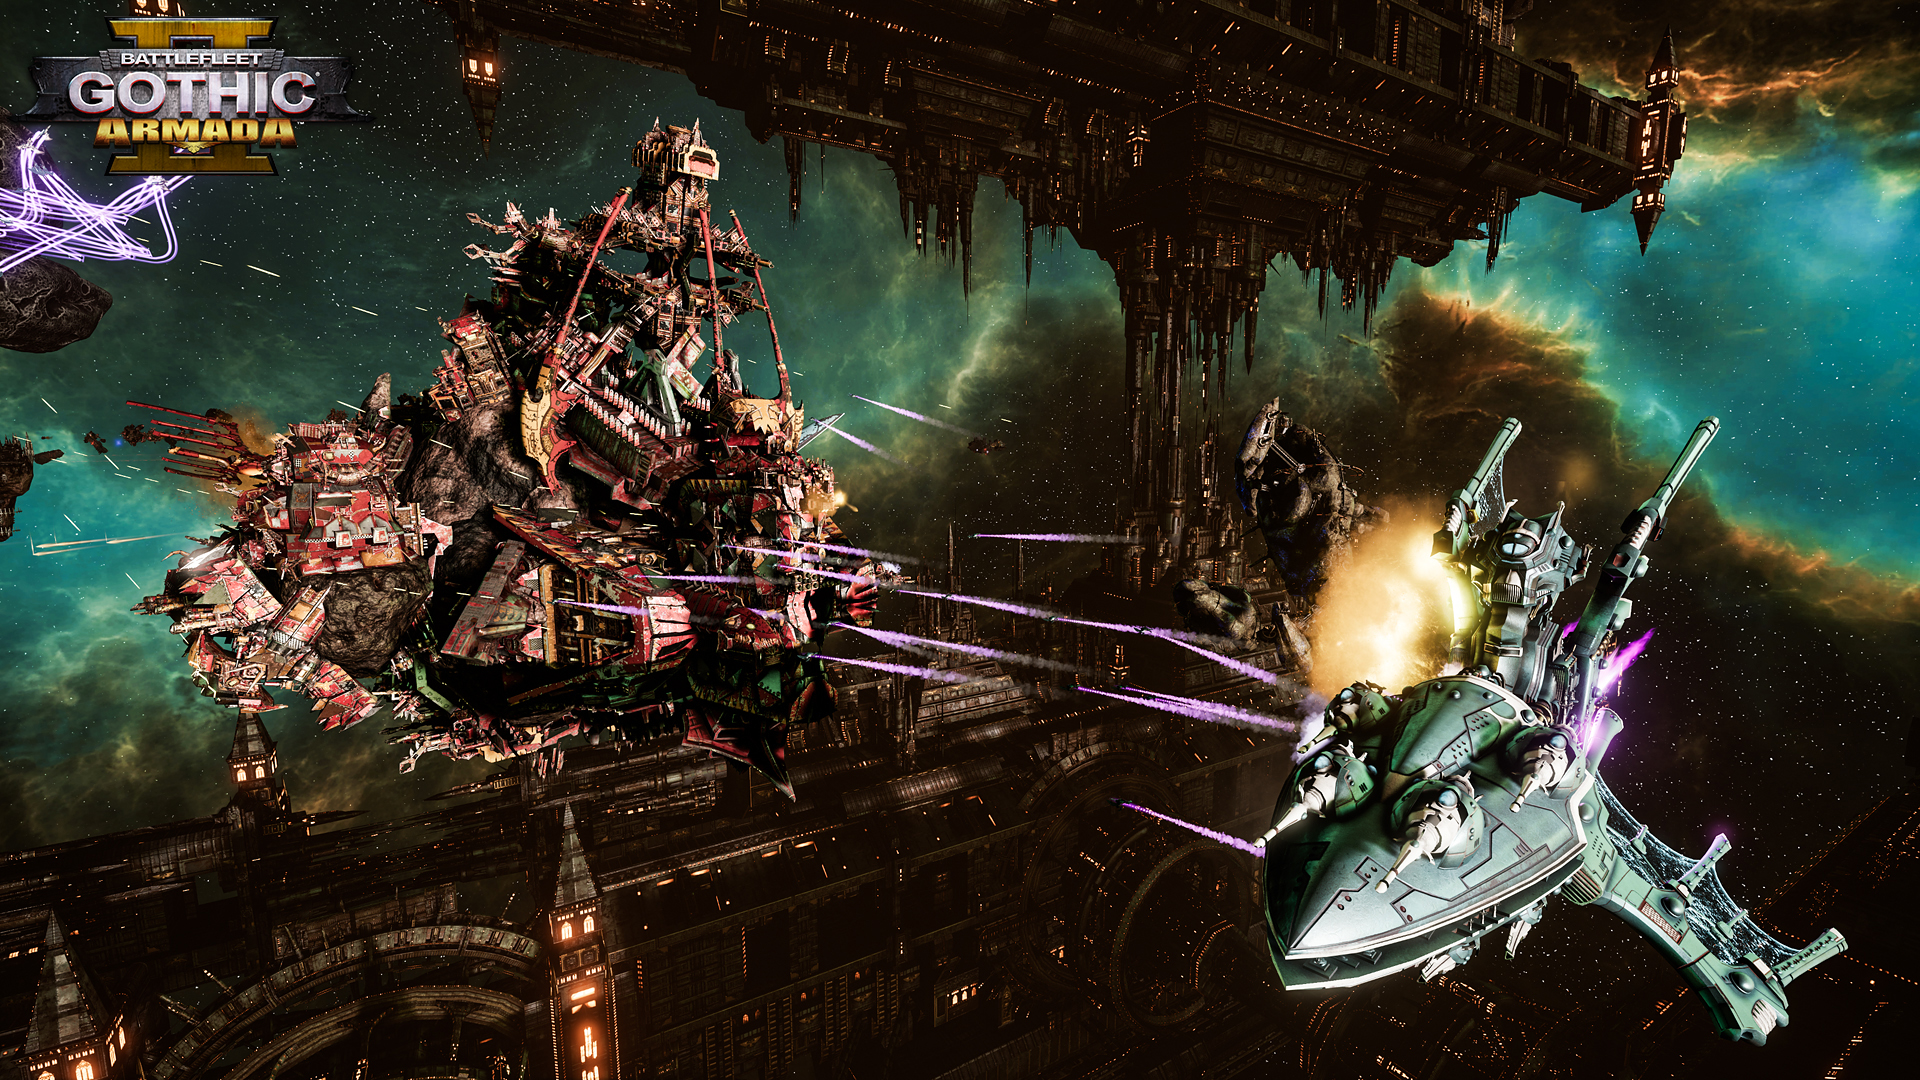 Battlefleet Gothic Armada II gameplay of ships in space